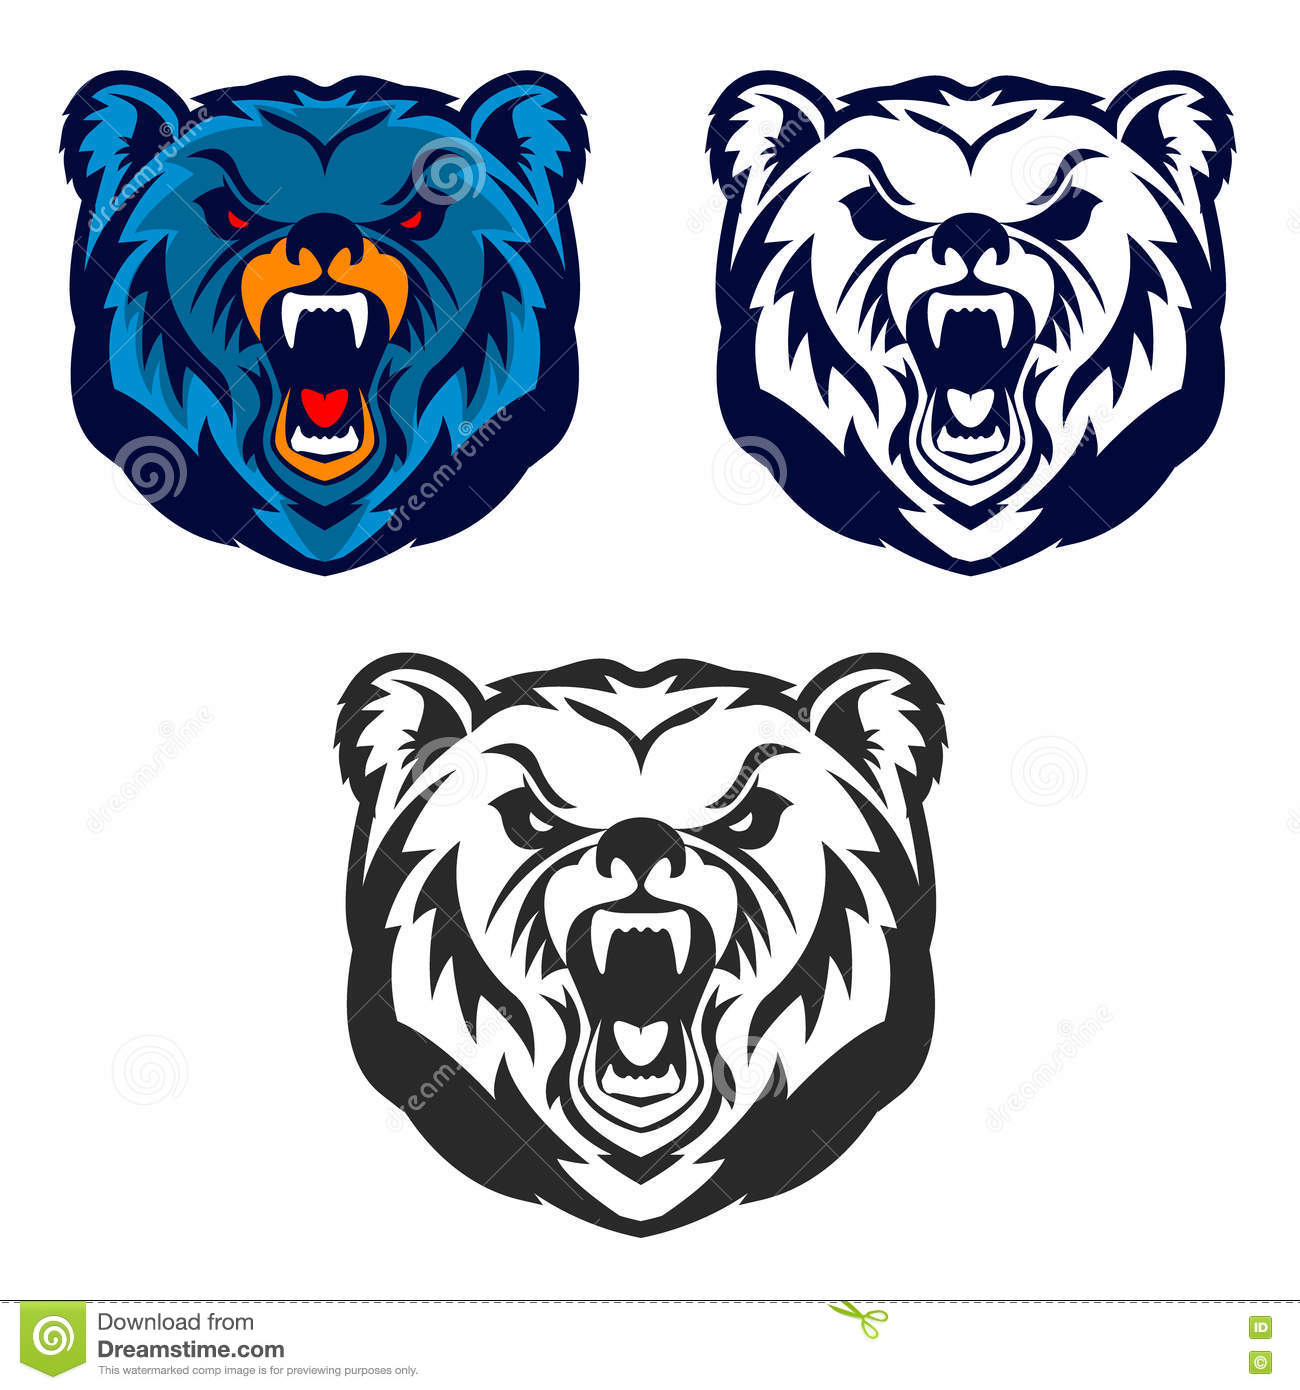 hight resolution of bear mascot emblem of the sport team or club